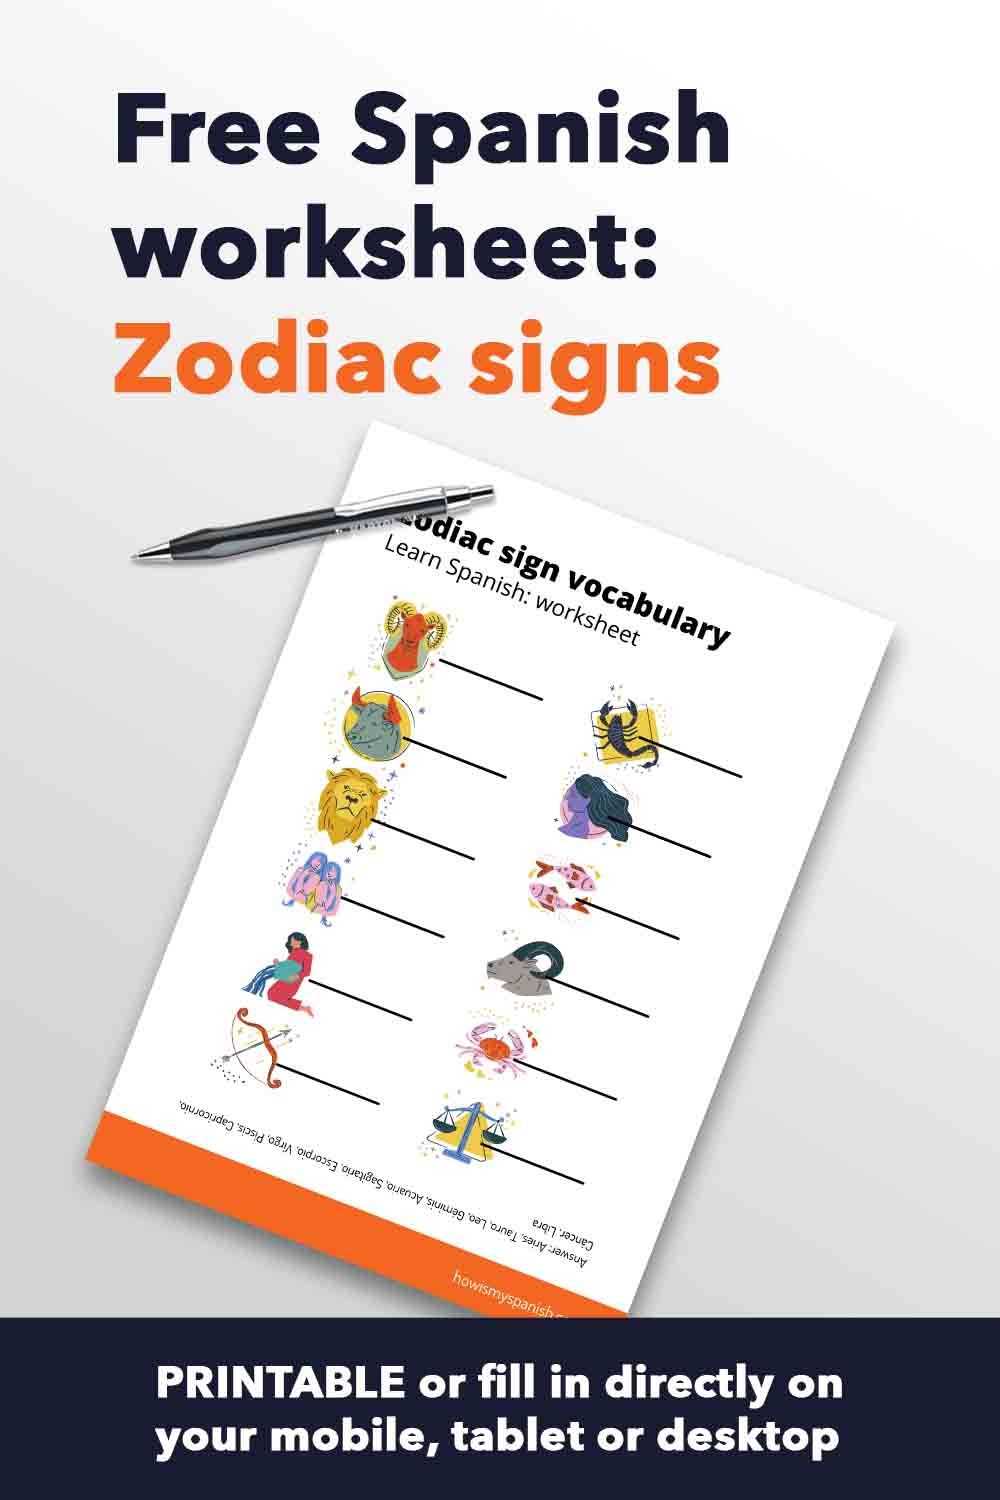 Spanish worksheet Zodiac signs